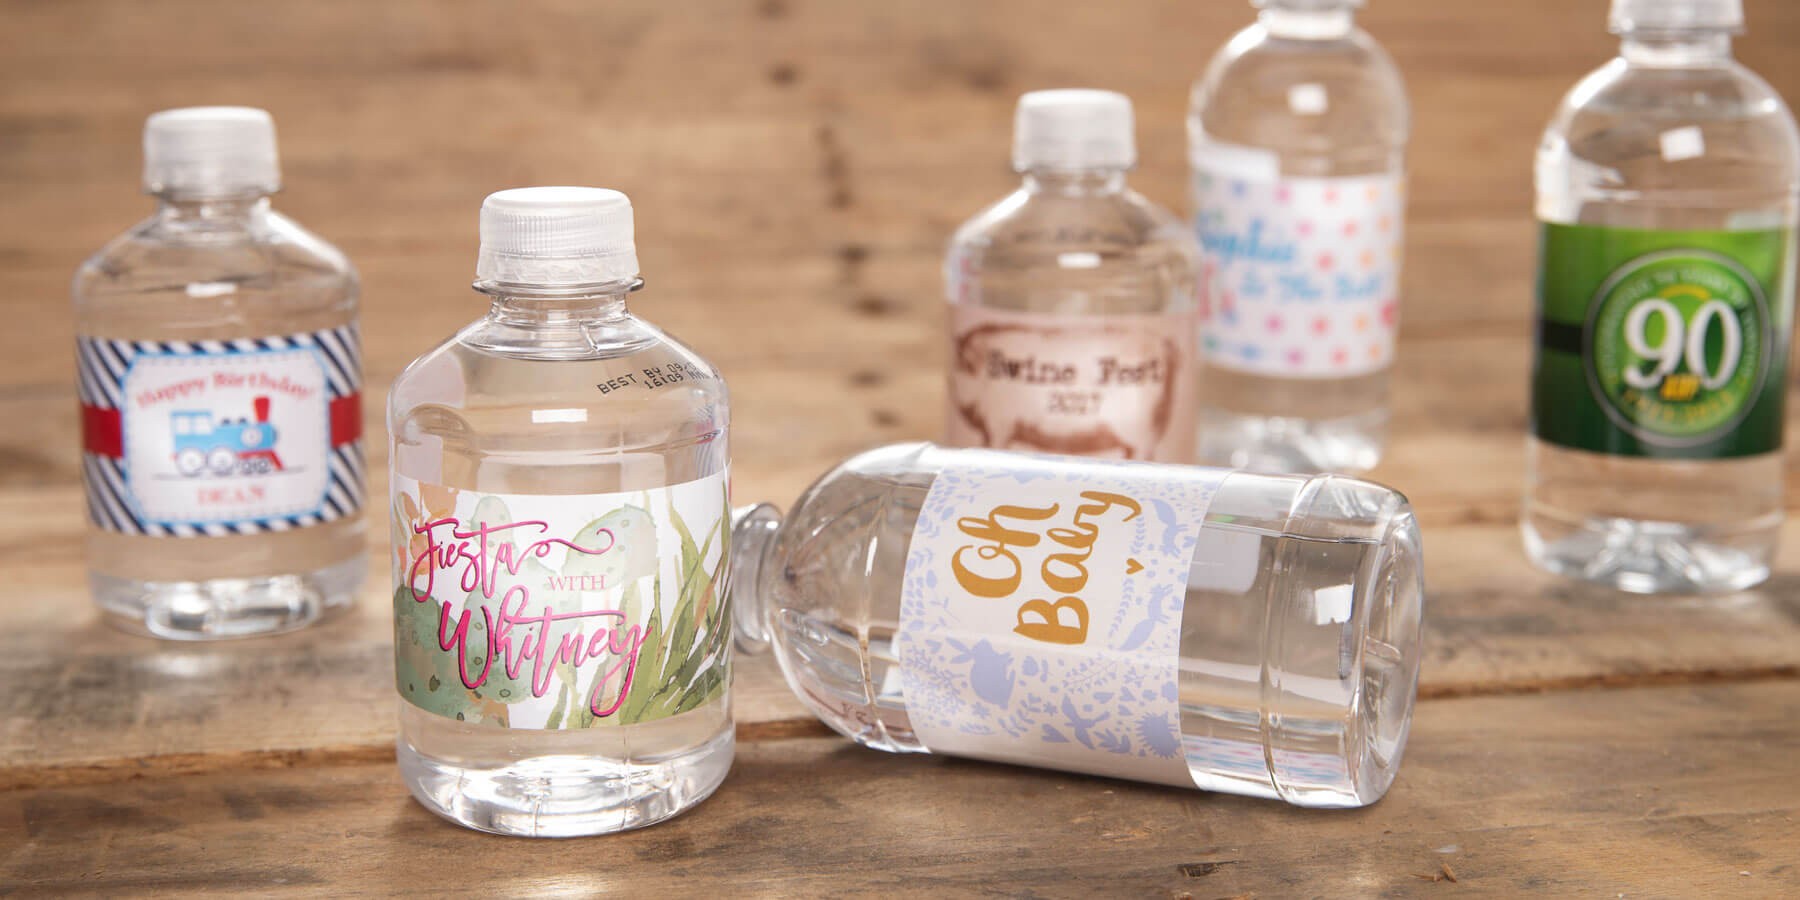 Water bottles with custom labels for special events.